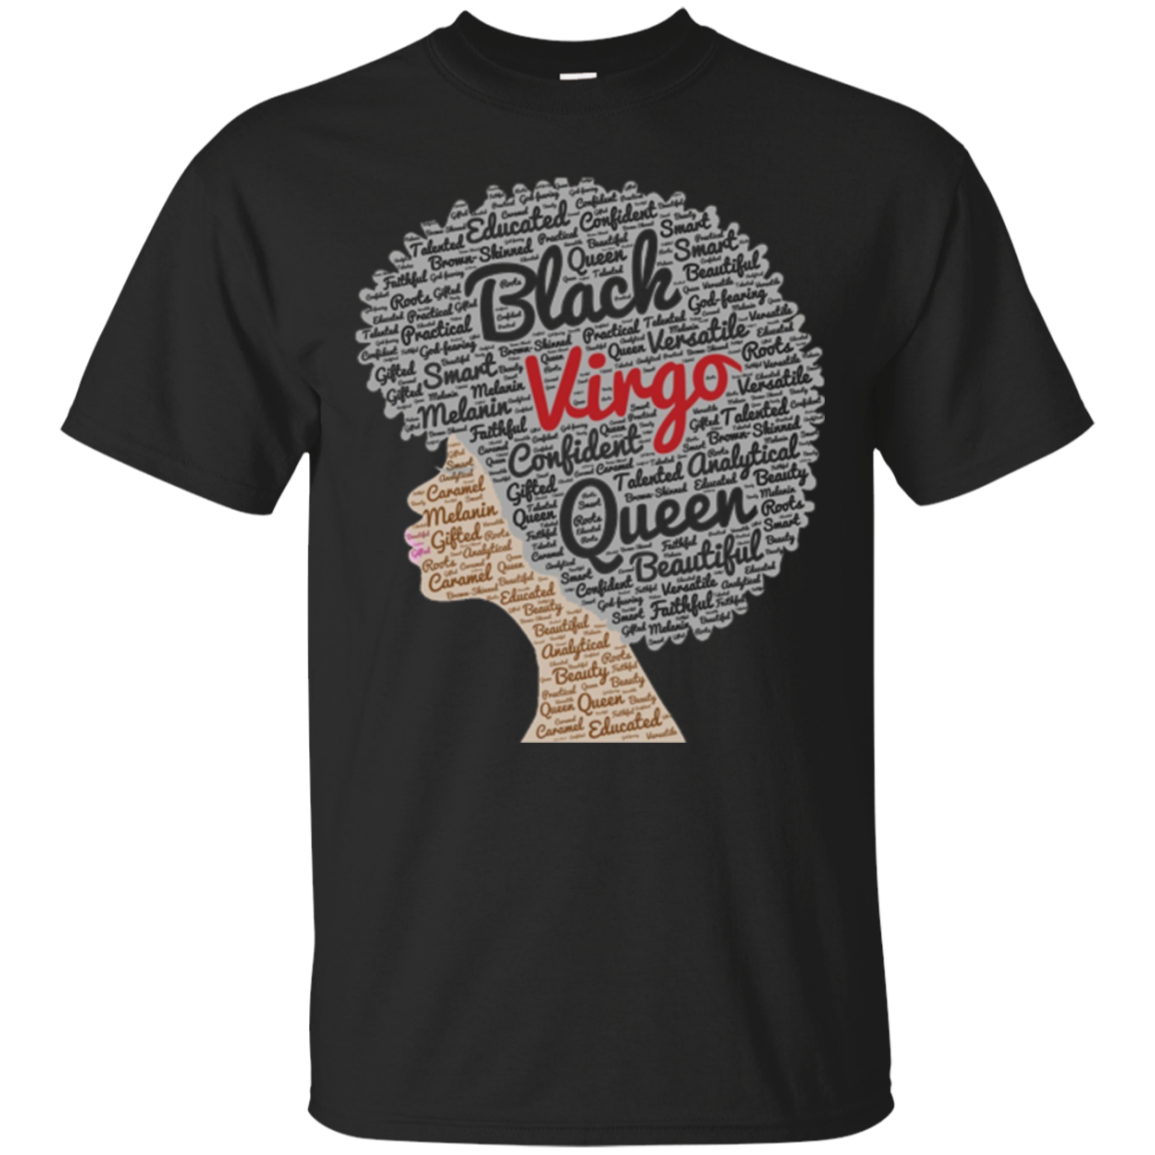 Virgo Zodiac Birthday Afro T-Shirt for Black Women